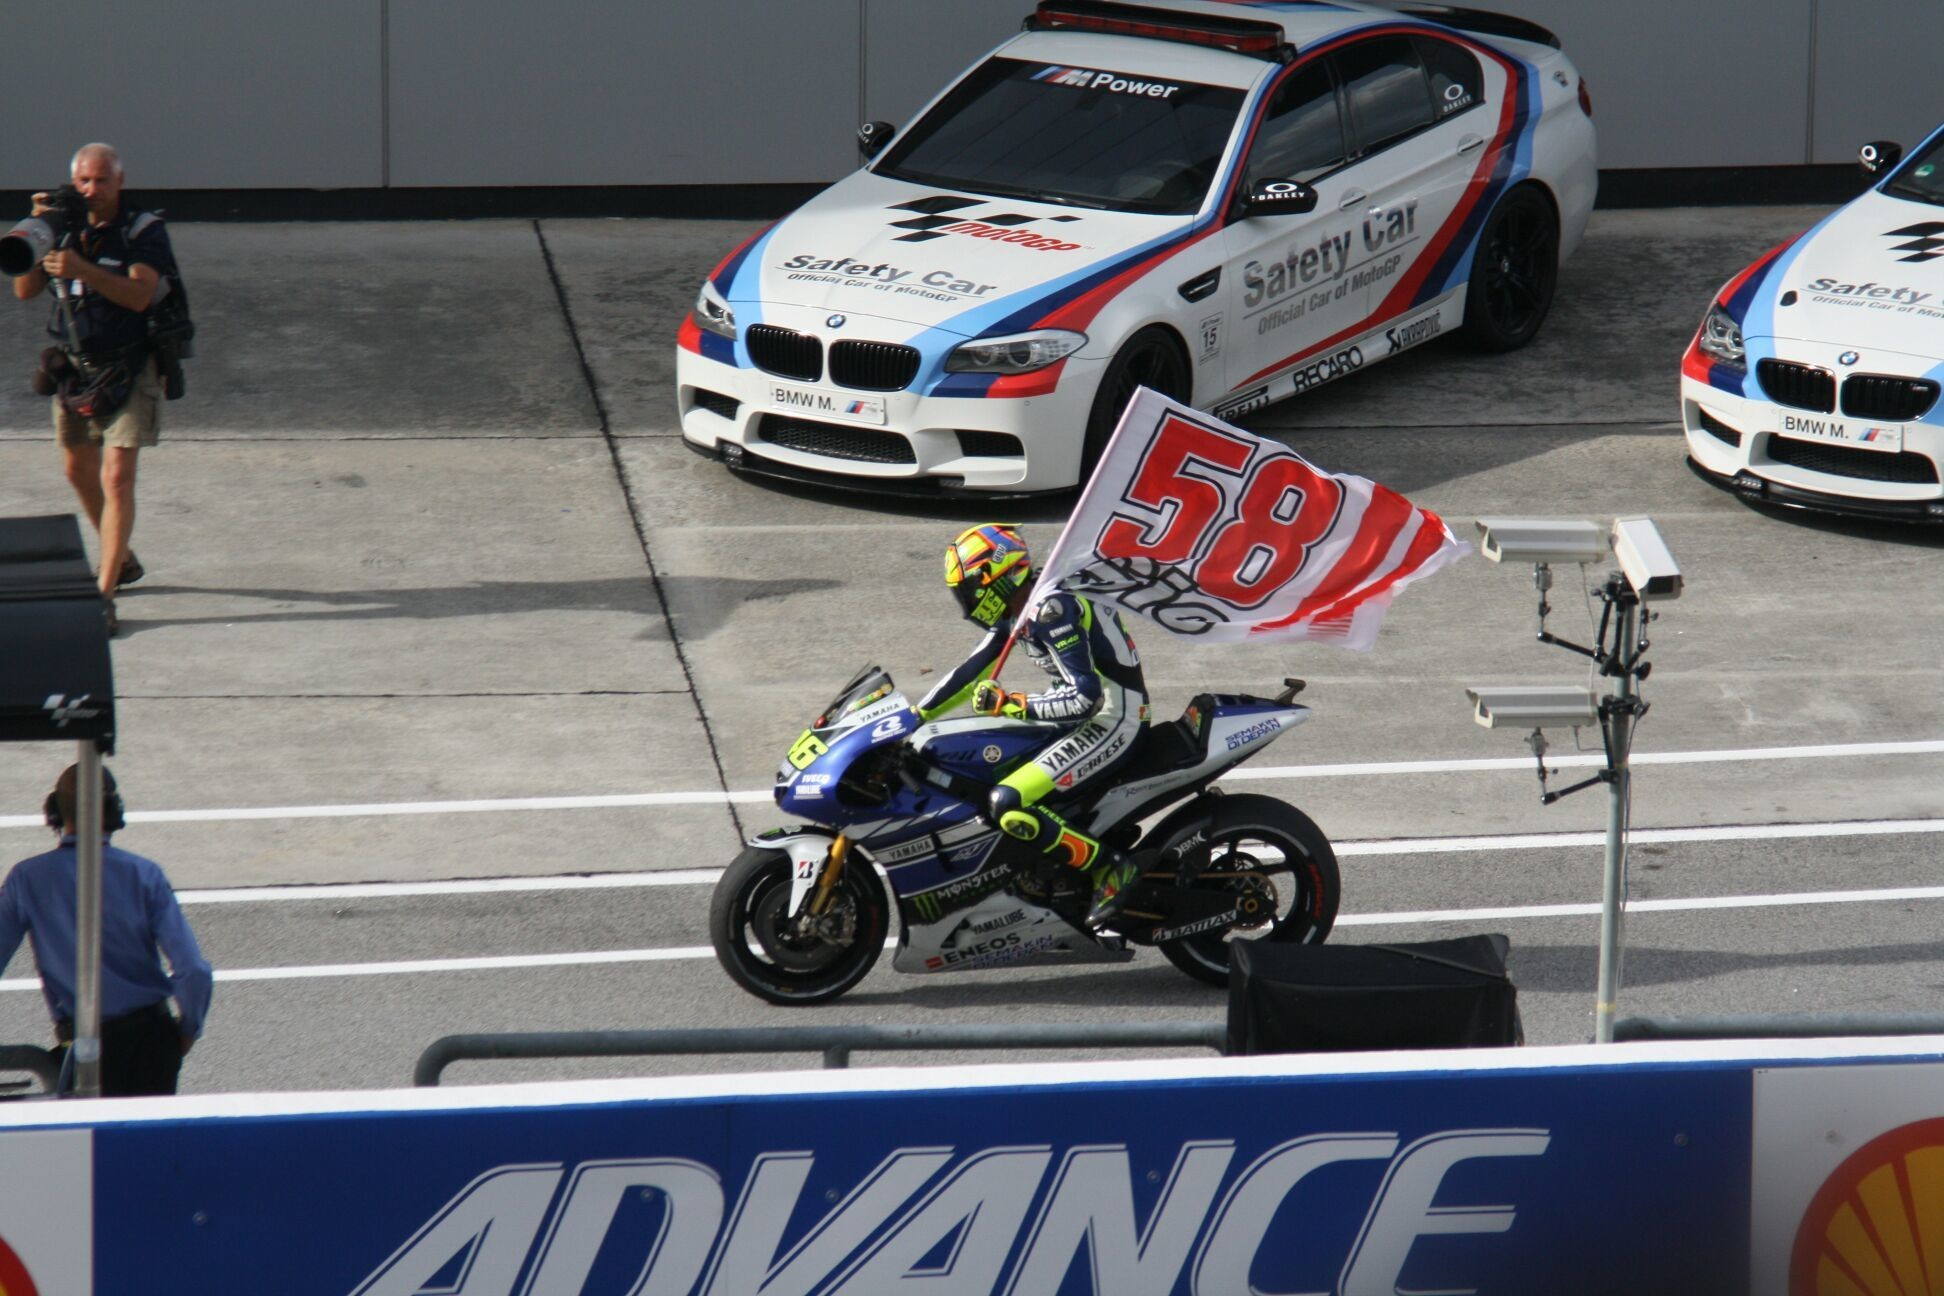 Yesterday at Moto GP Sepang, Malaysia. One of best moment Valentino Rossi bring memory to remember for Marco Simmonceli..